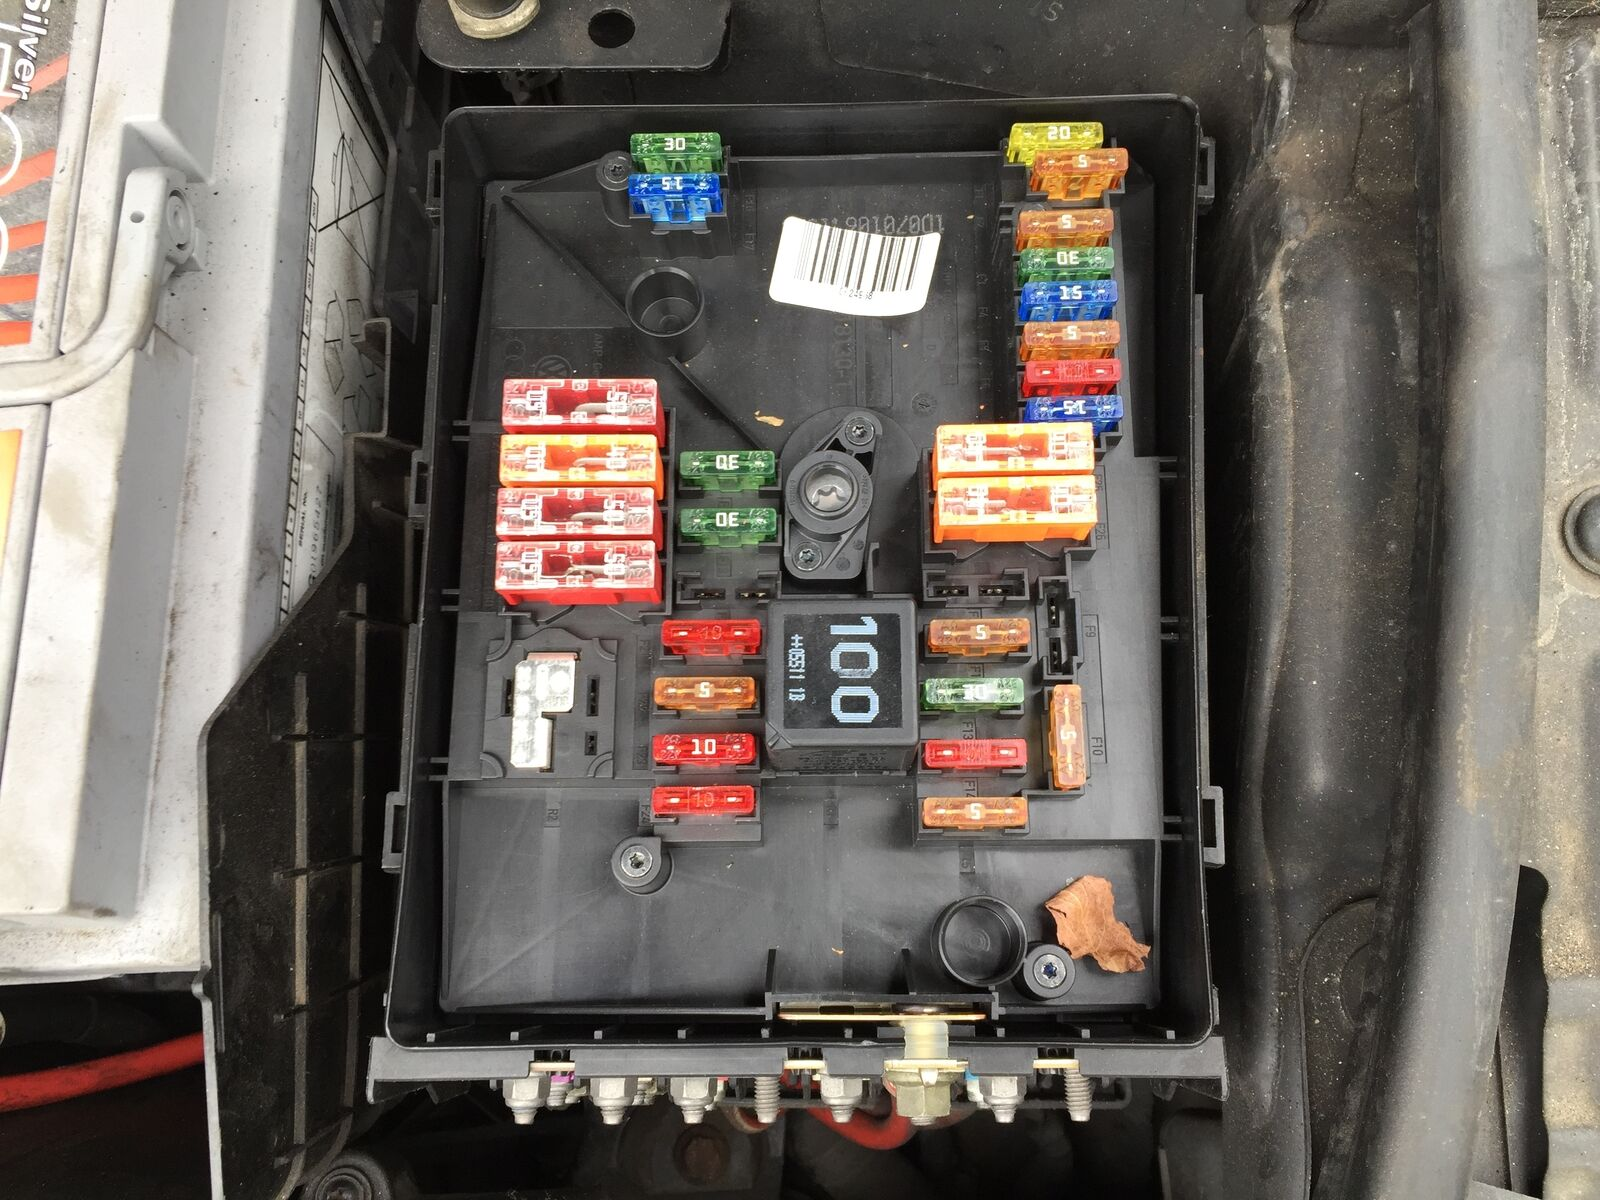 2008 audi a3 fuse box wiring diagram will be a thing u2022 rh  exploreandmore co uk 1999 audi a3 fuse box diagram 98 Audi A8 Fuse Location